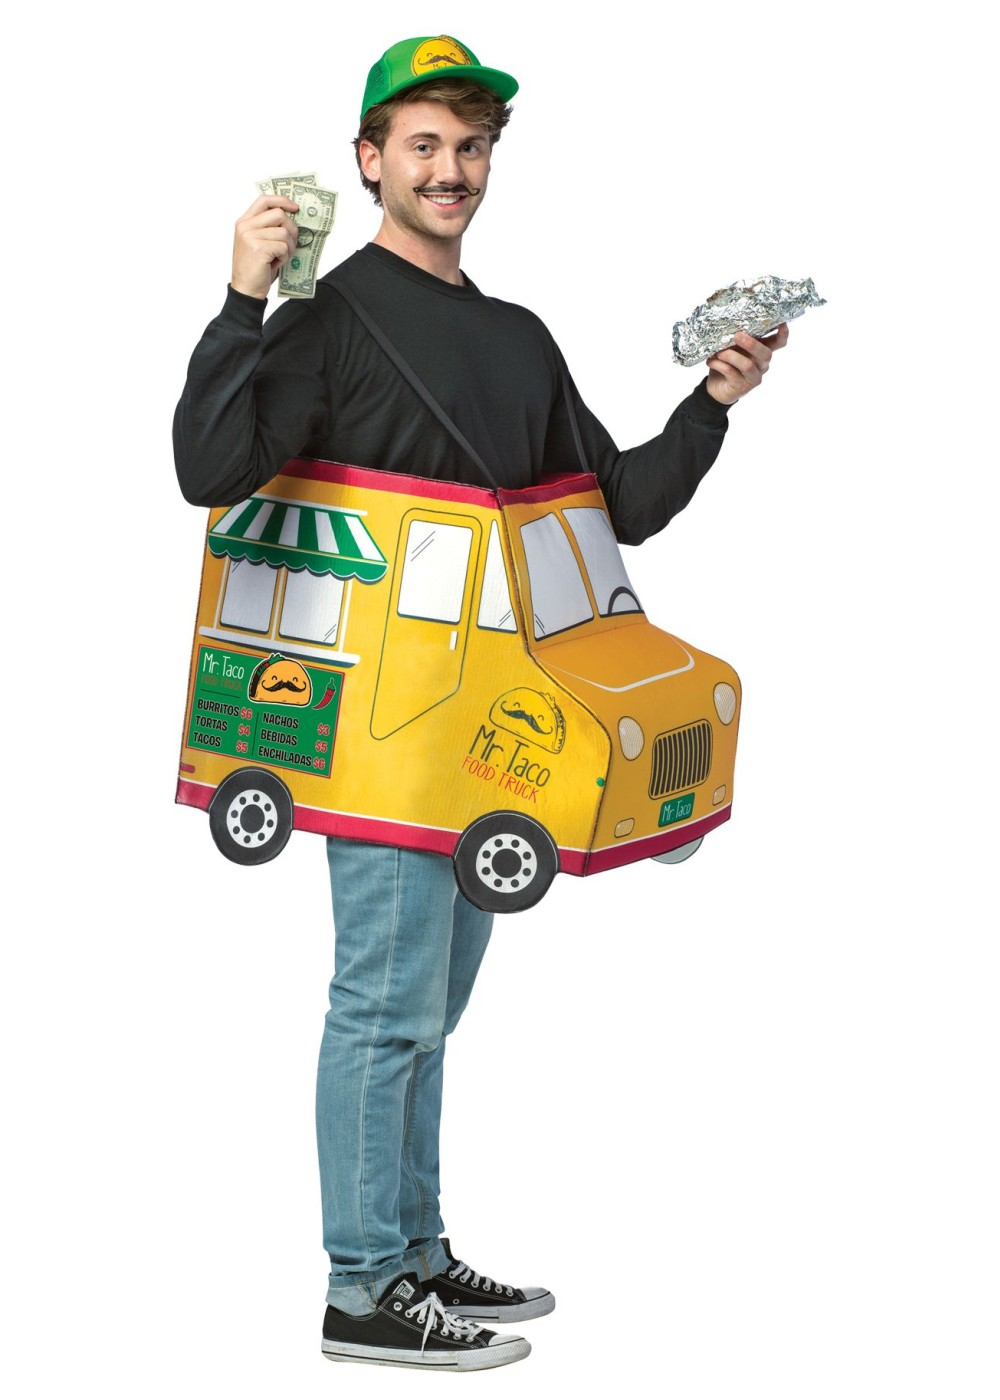 Mr Taco Food Truck Mens Costume Funny Costumes